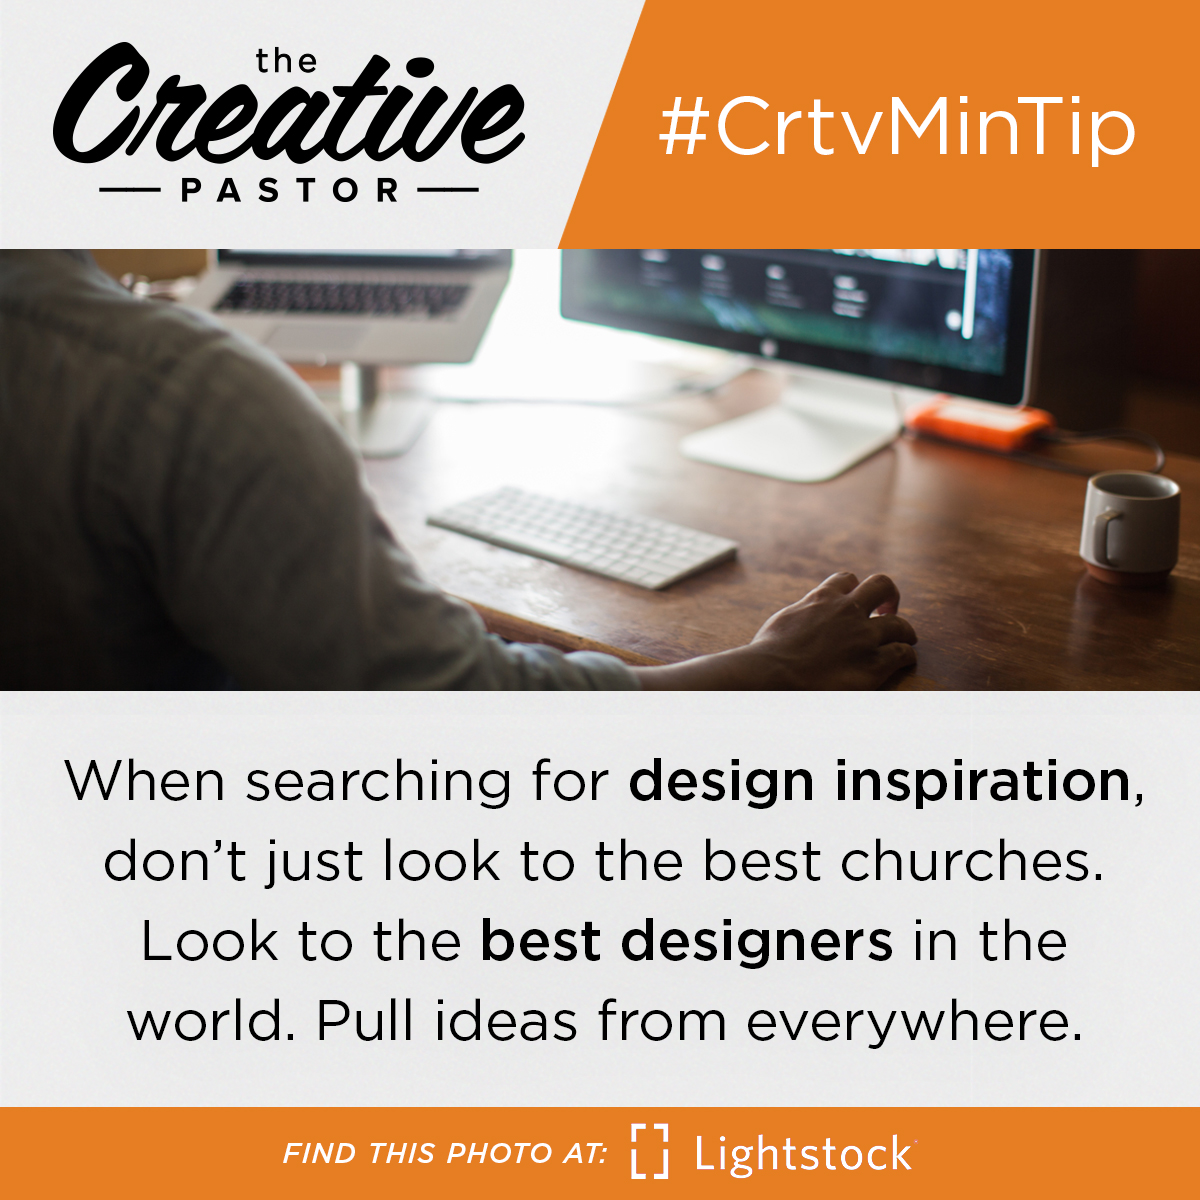 #CrtvMinTip: When searching for design inspiration, don't just look to the best churches. Look to the best designers in the world. Pull ideas from everywhere.